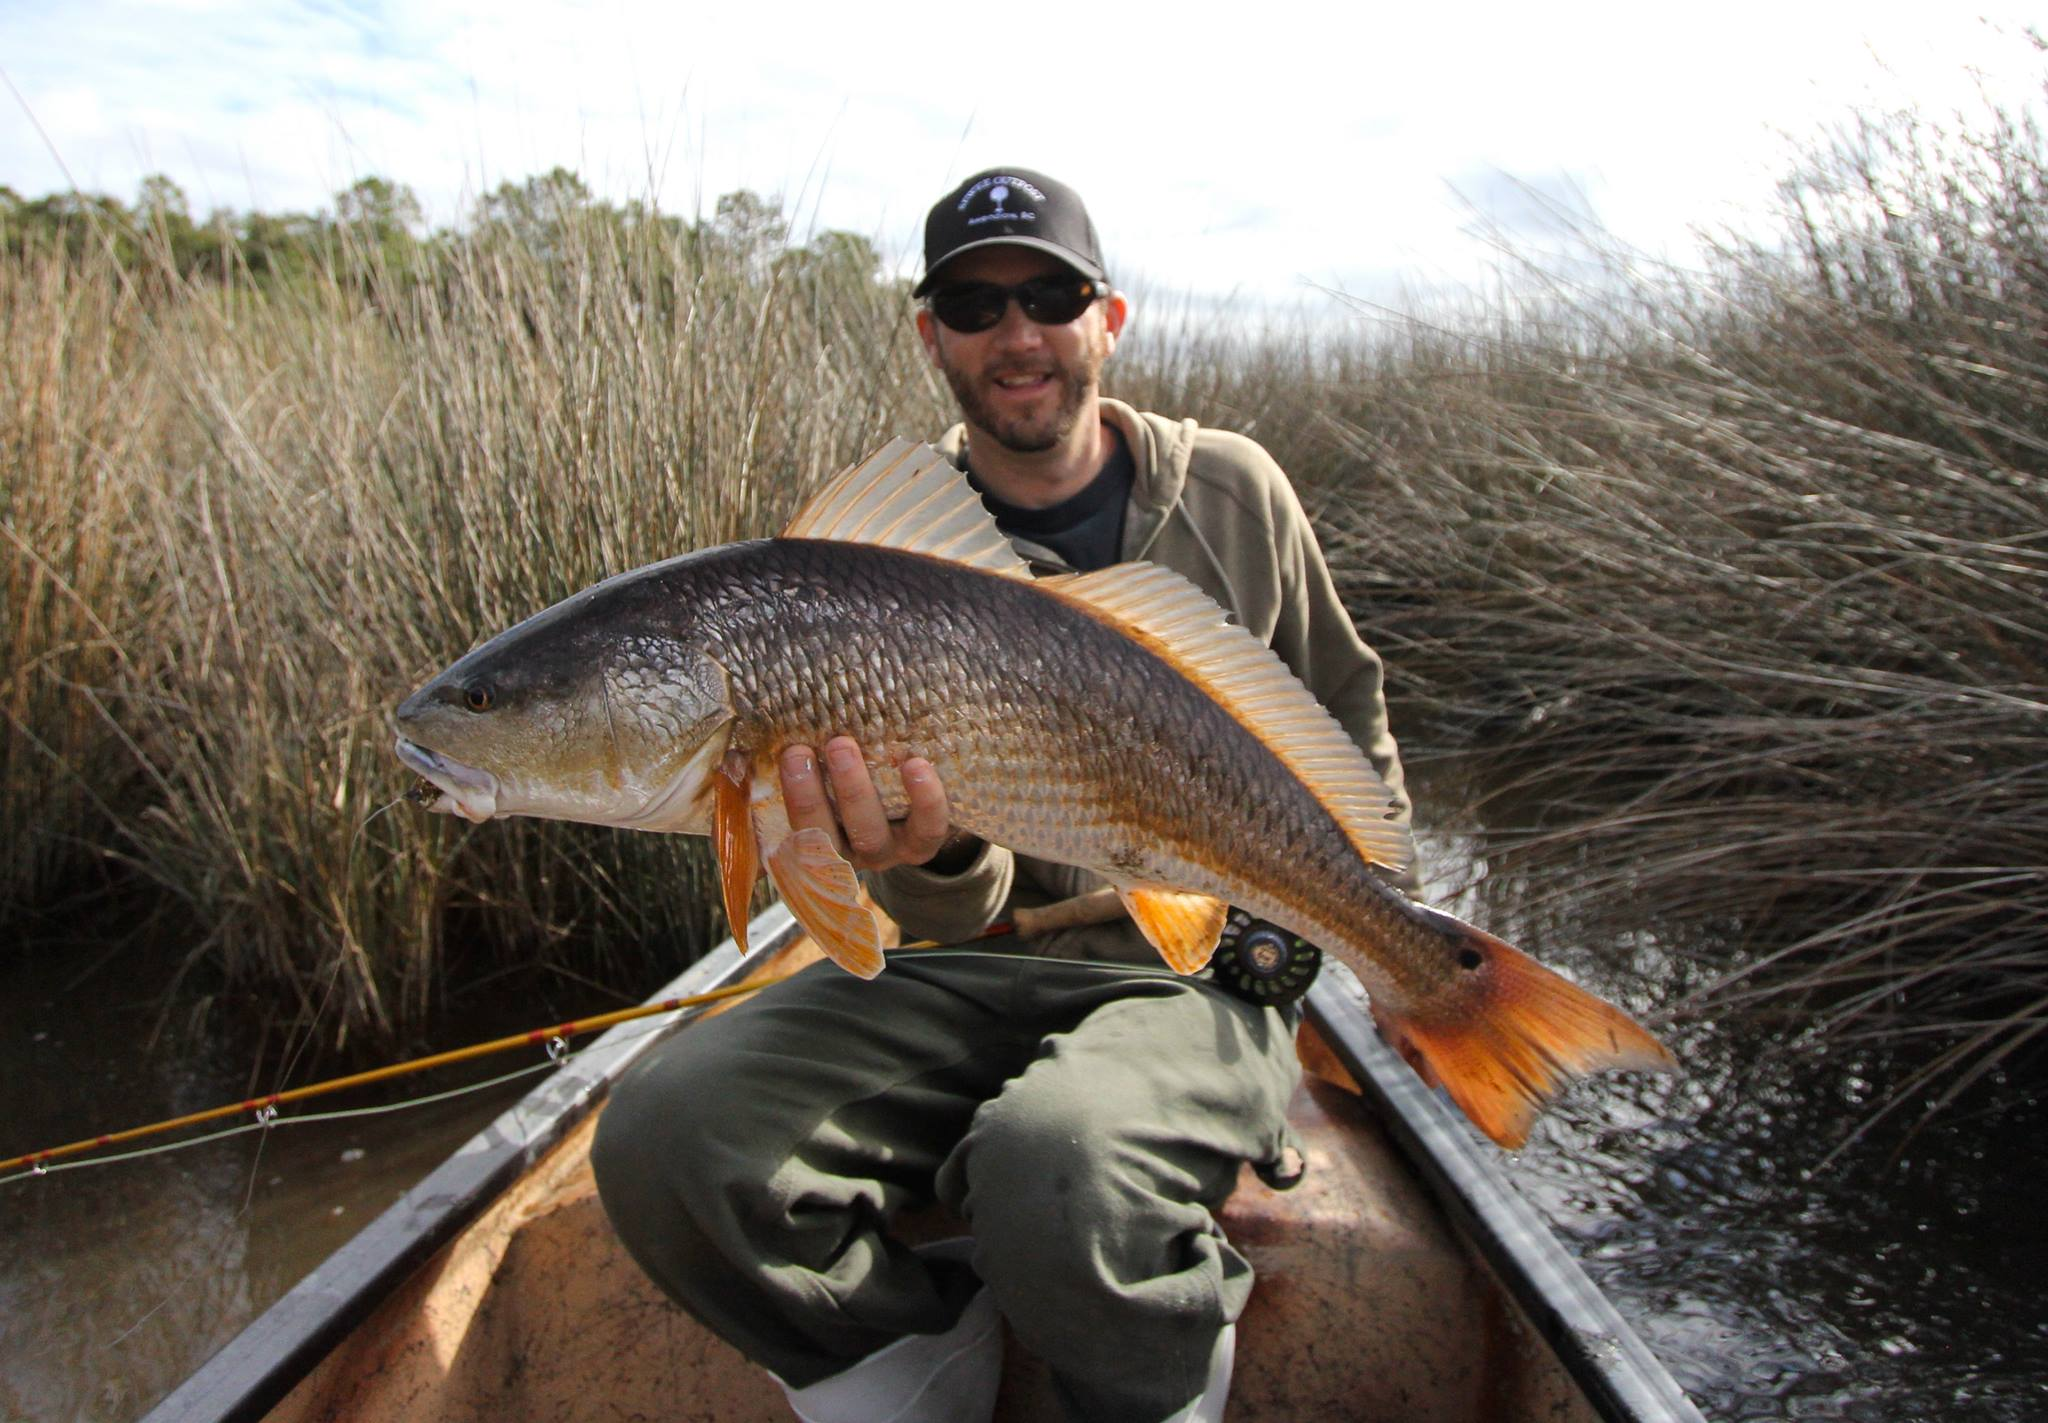 Gorgeous south carolina redfish on fly for Charleston fly fishing